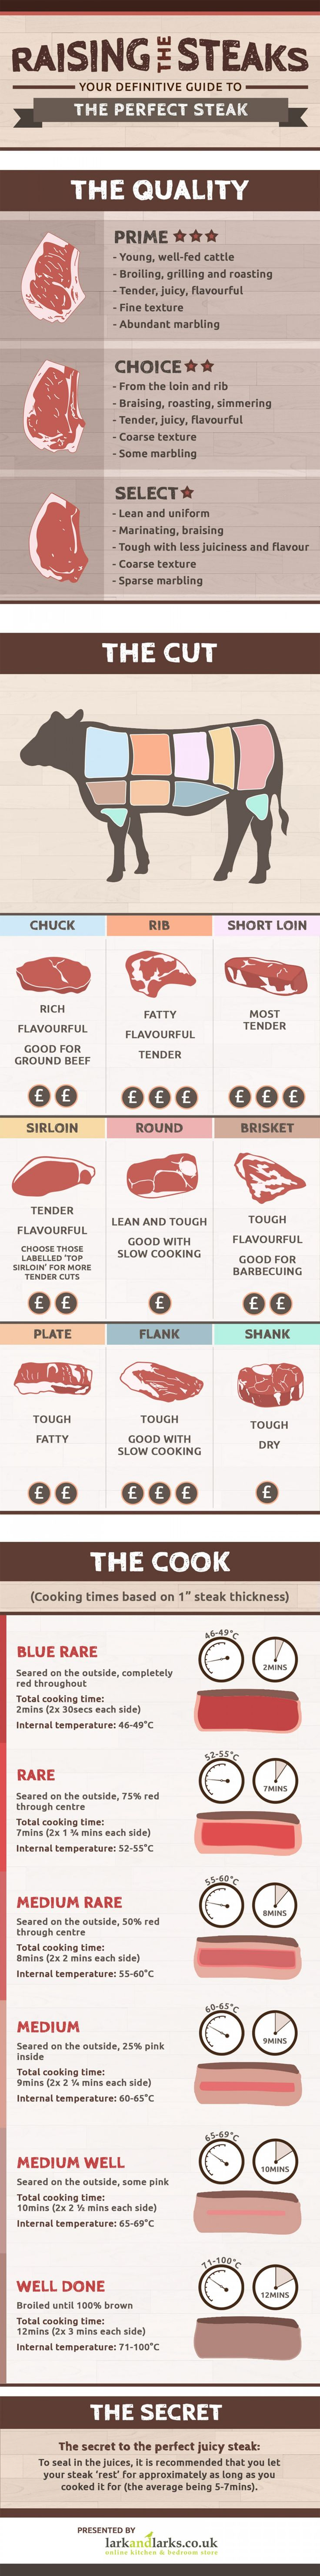 Finding the perfect cut of steak